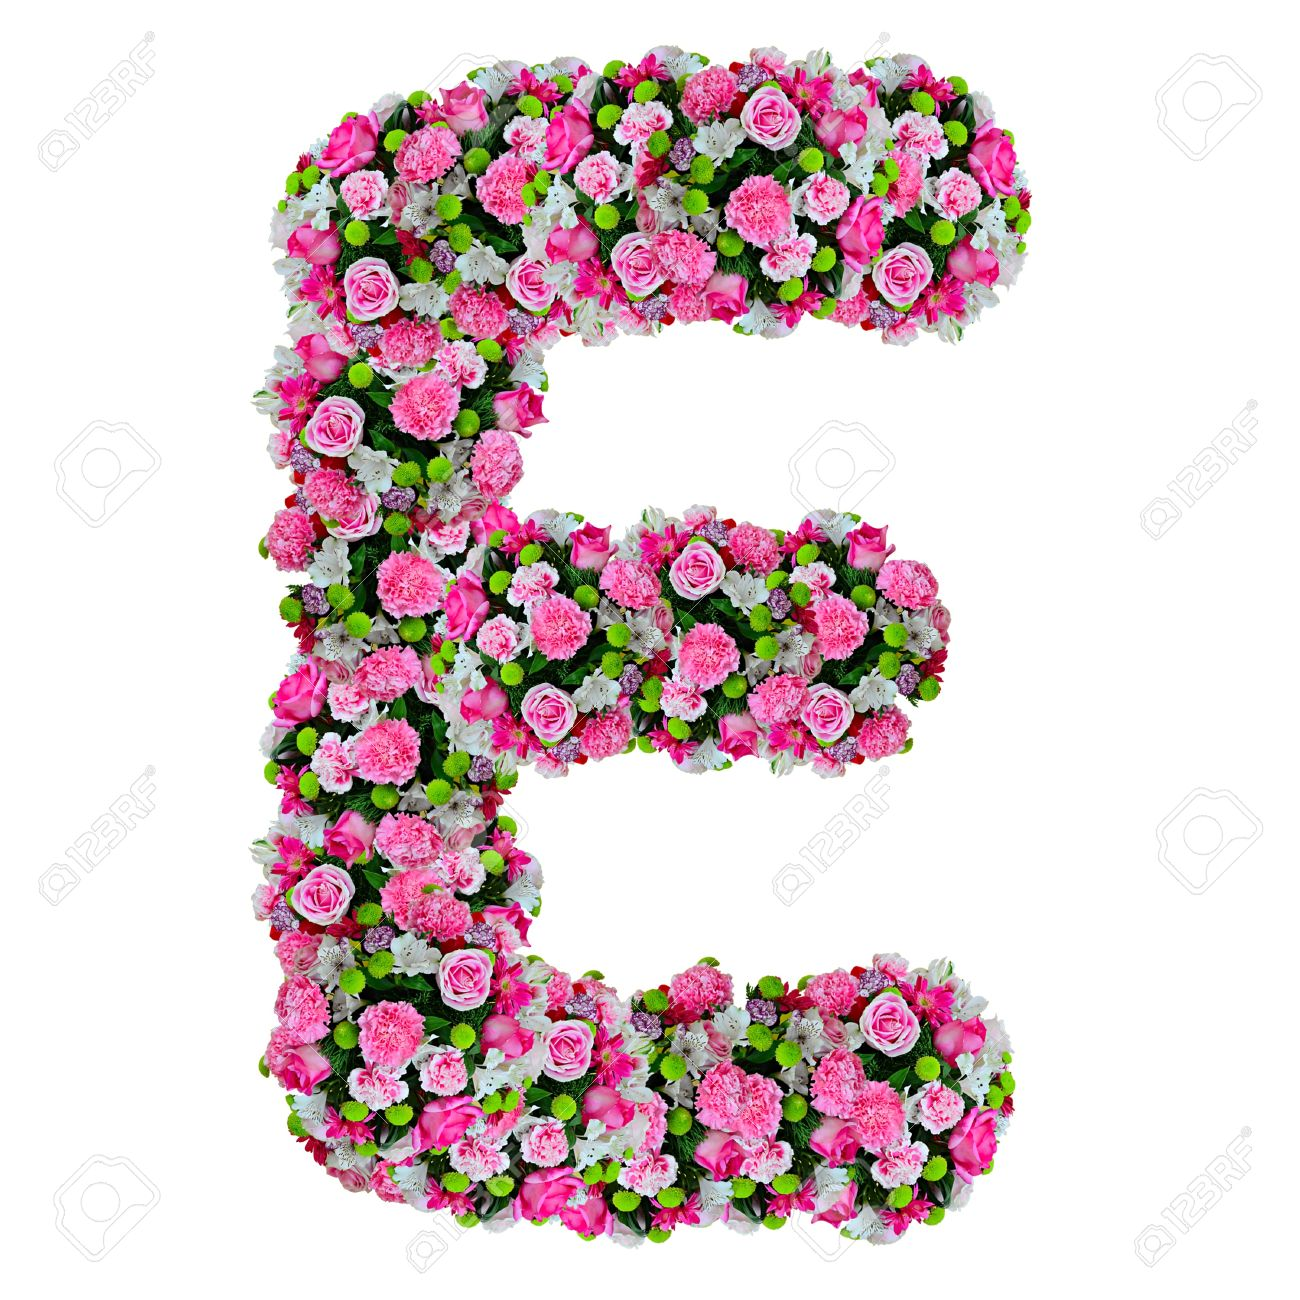 E flower alphabet isolated on white with clipping path stock photo e flower alphabet isolated on white with clipping path stock photo 11854419 altavistaventures Images